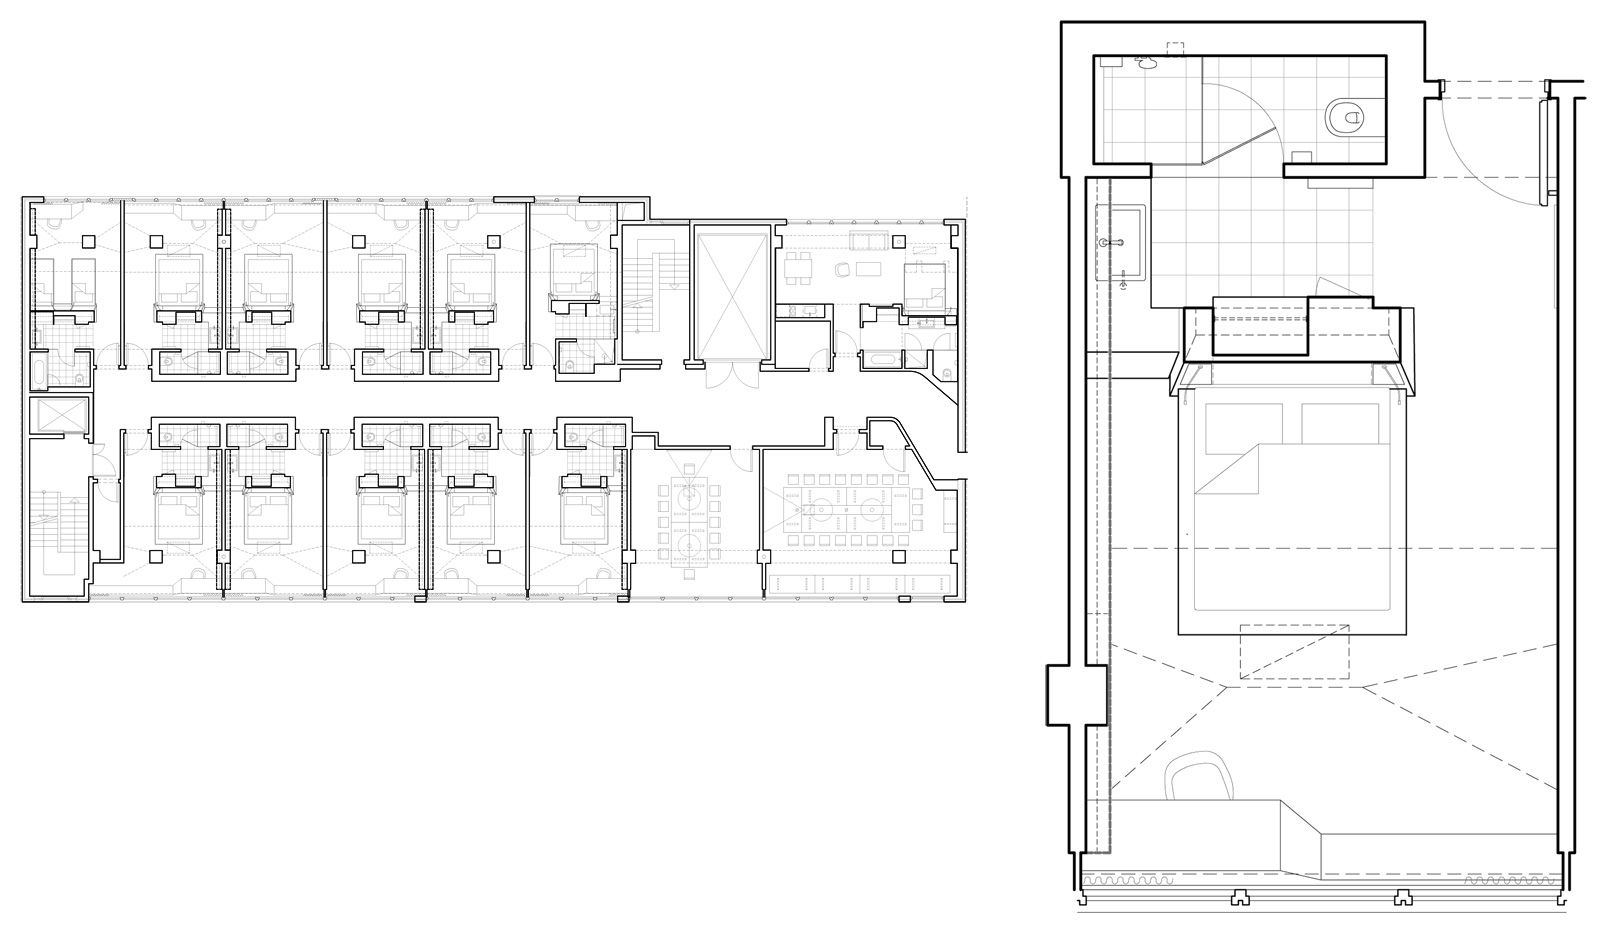 Hotel Room Layout Dimensions Images